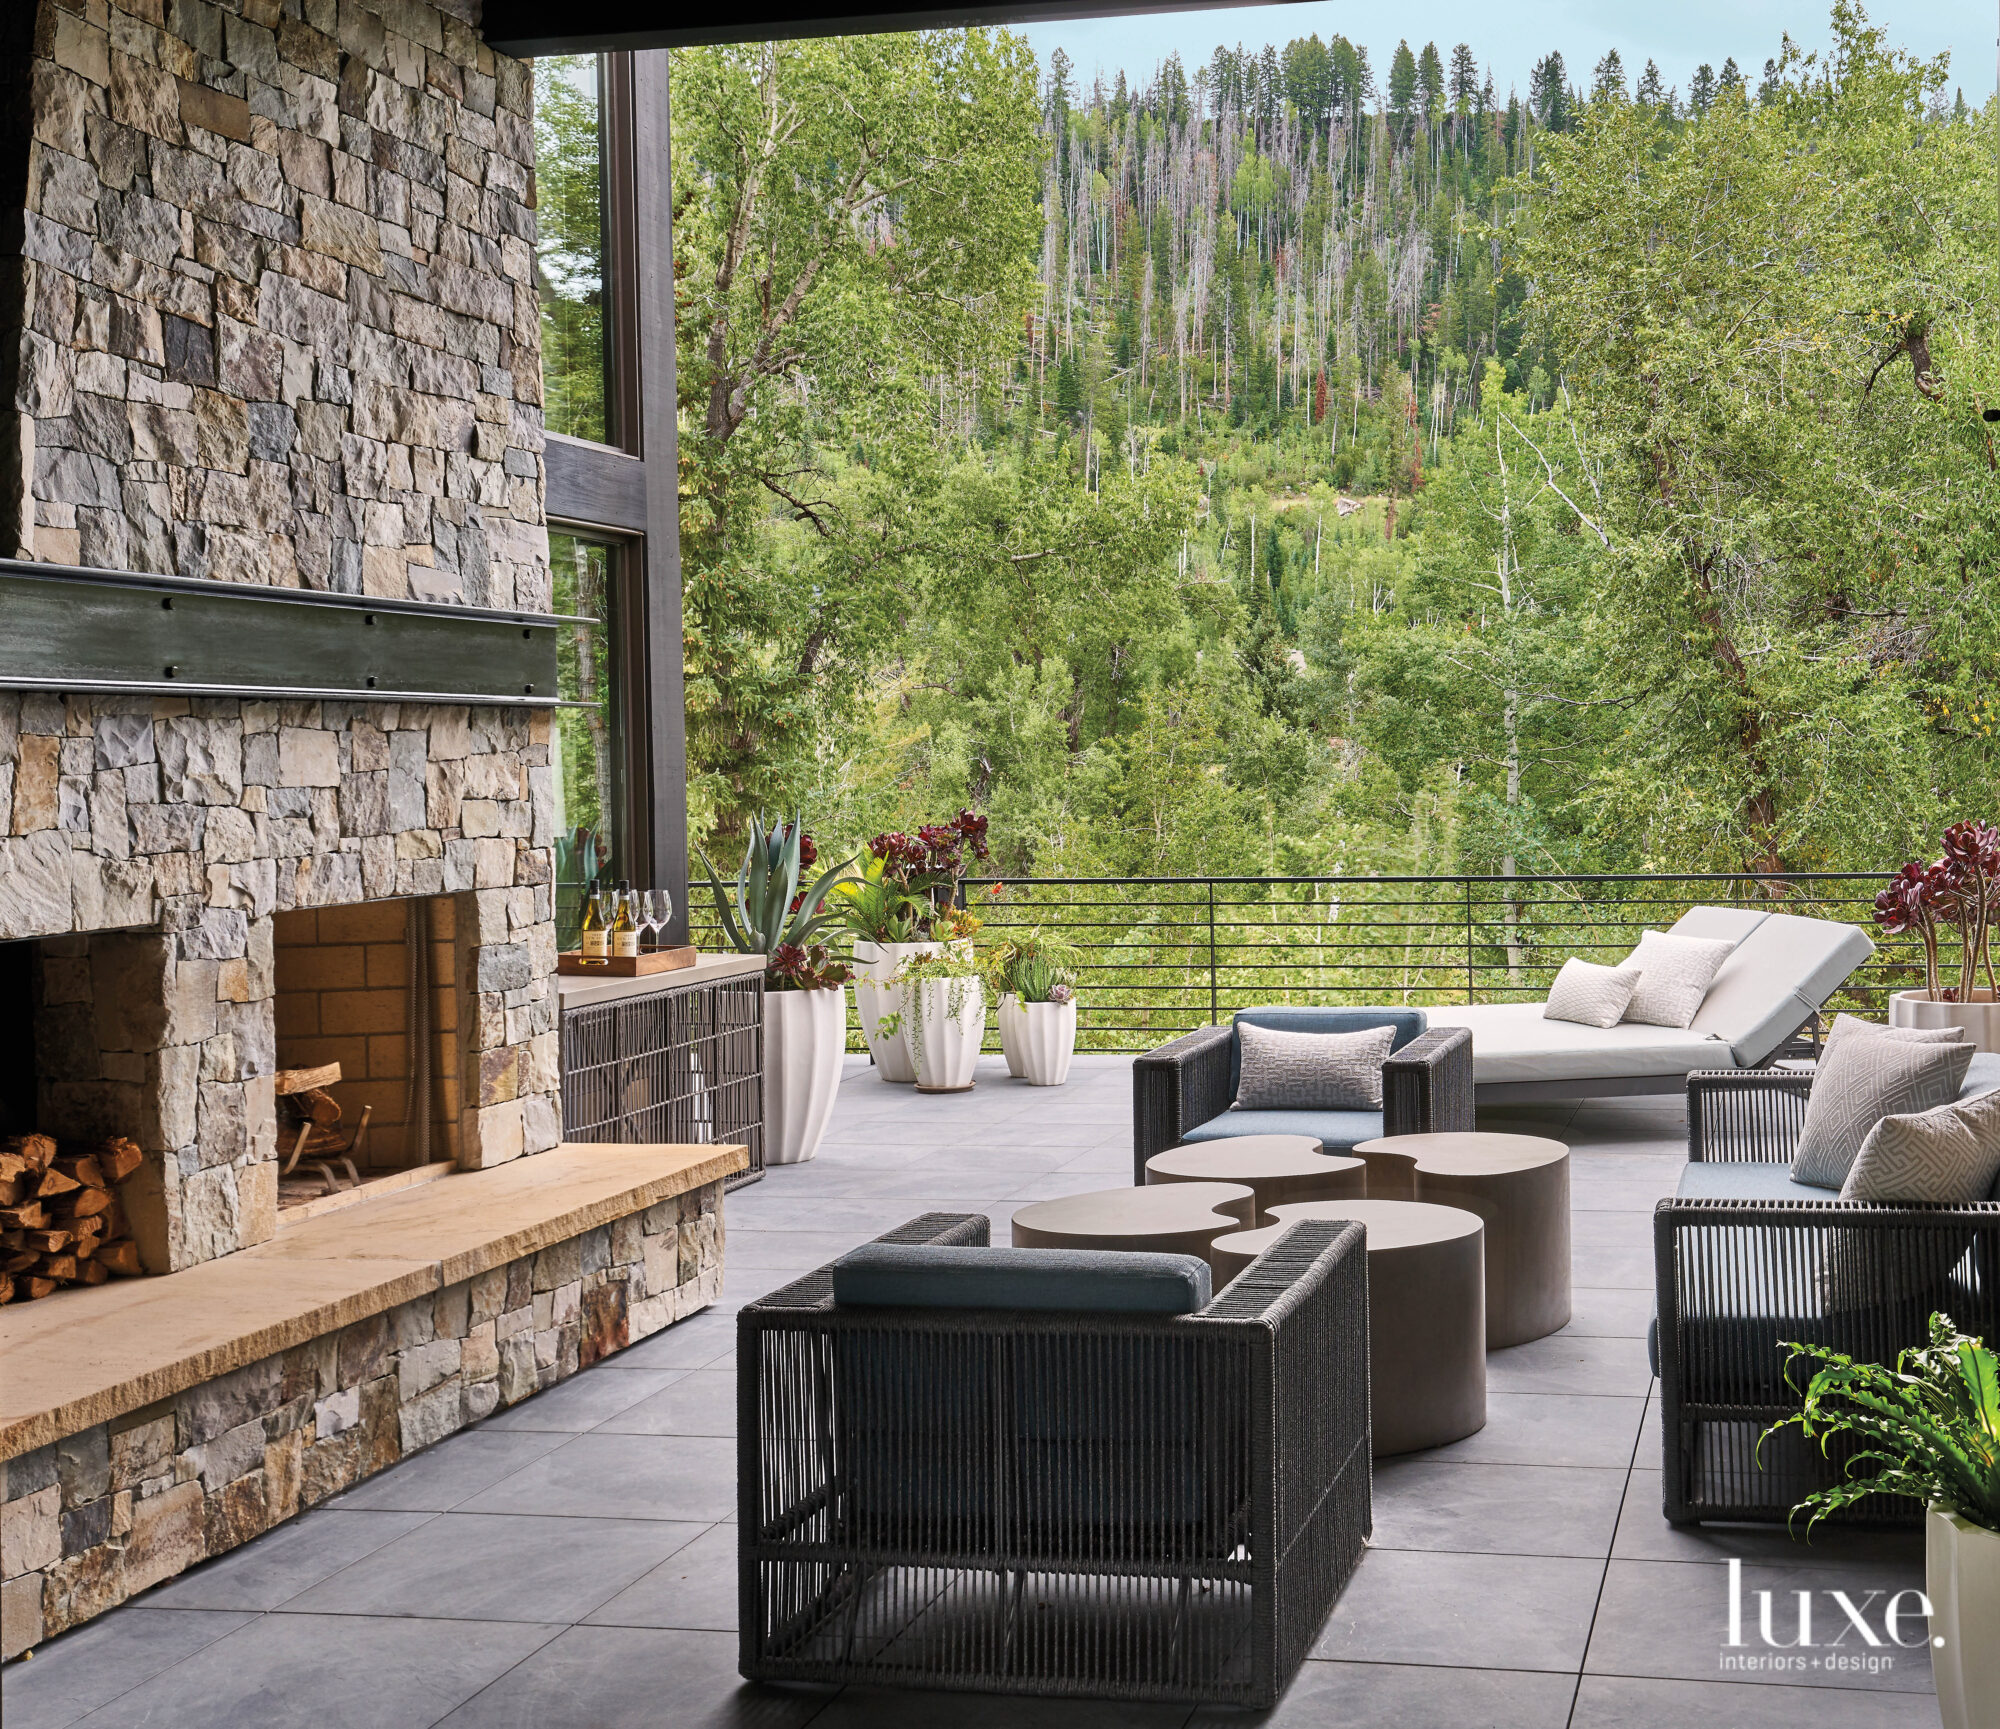 On a patio, outdoor furniture cozies up the the fireplace.